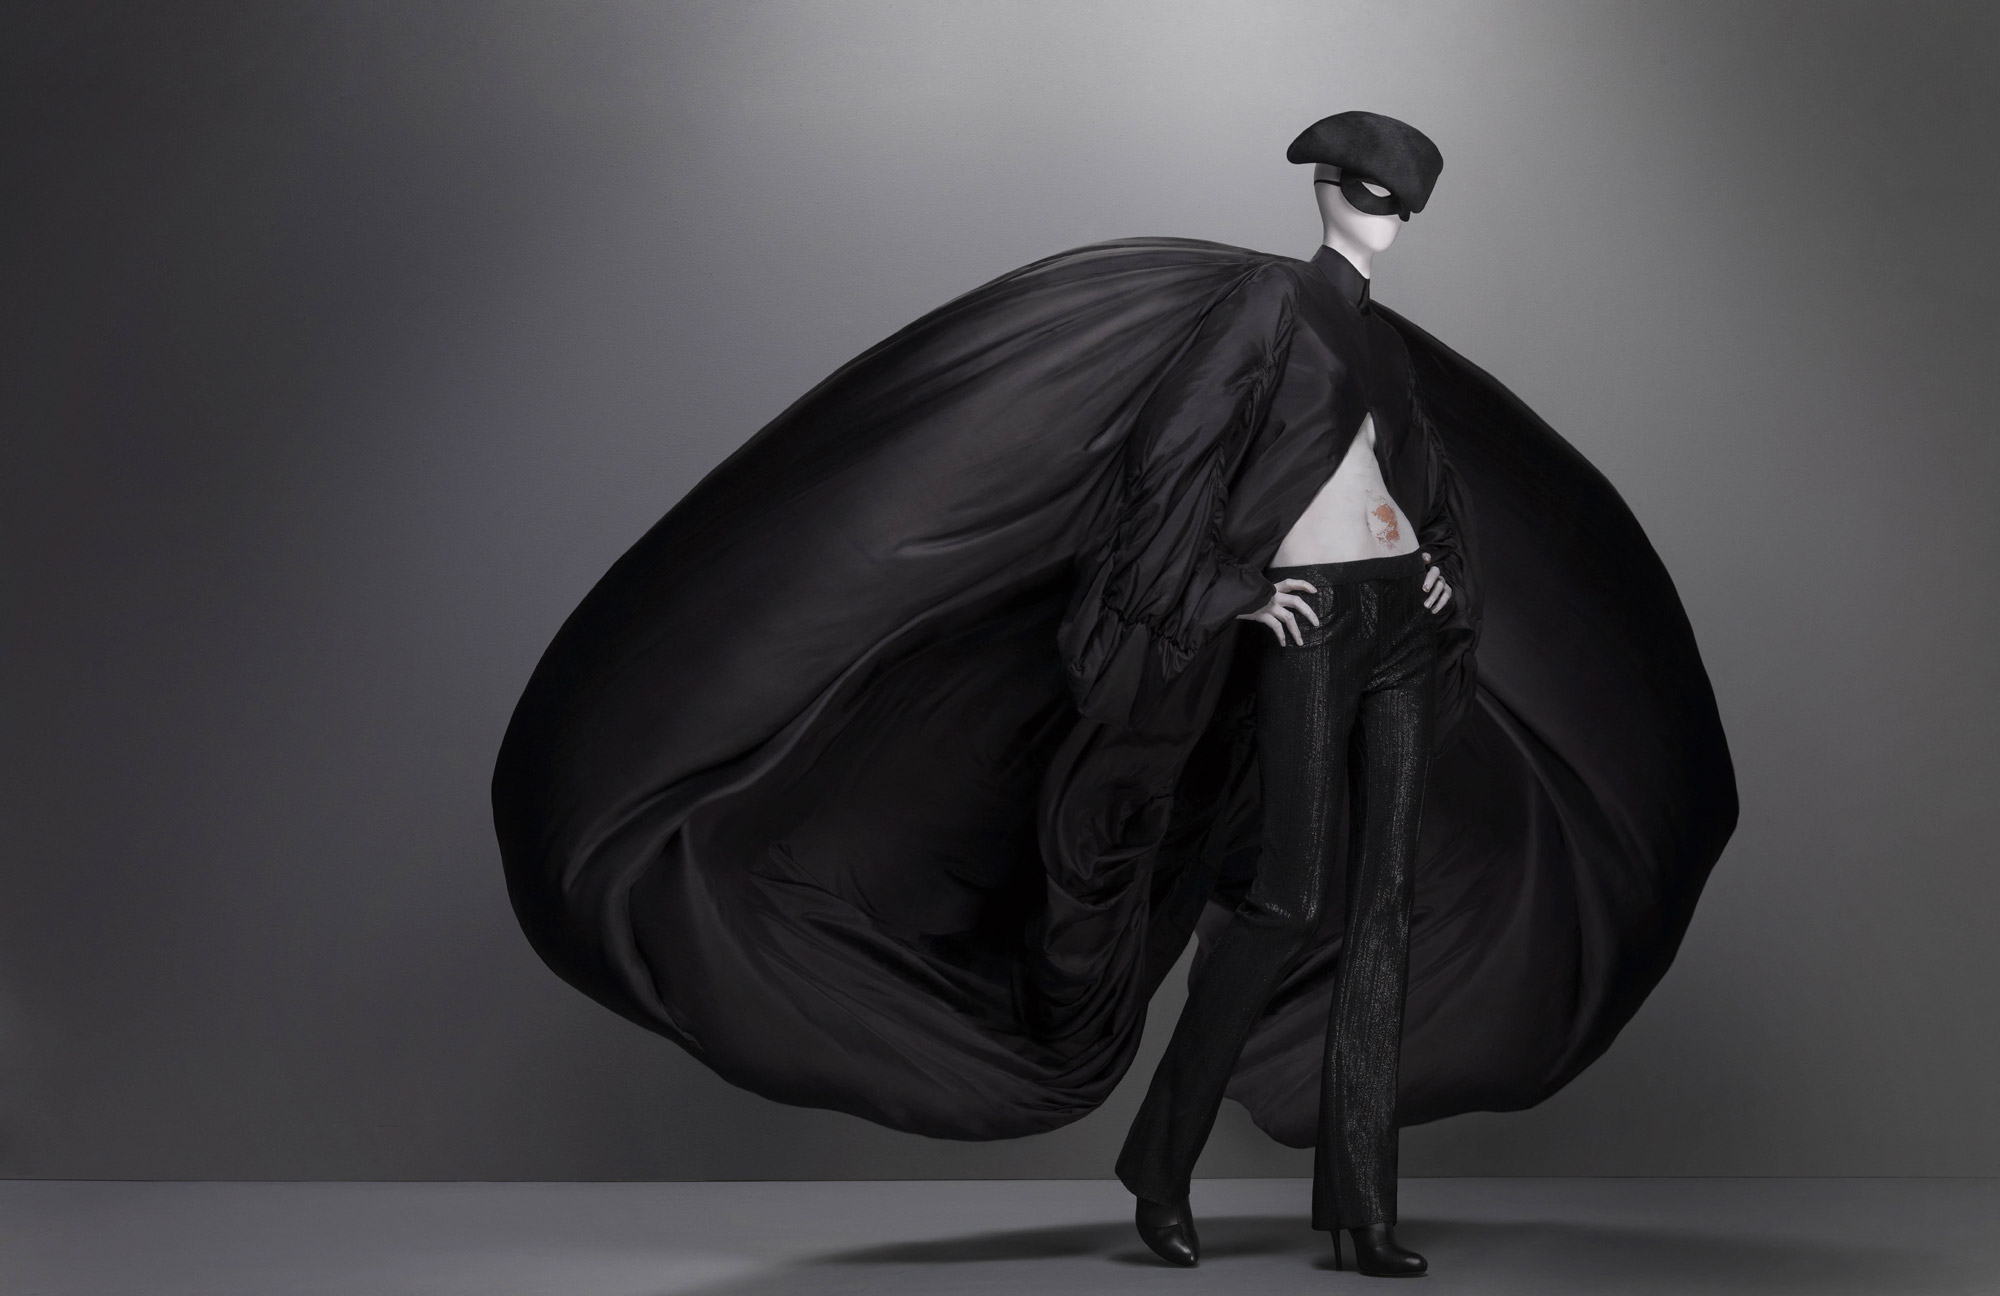 Supercalifragilisticexpialidocious, autumn/winter 2002–3 Coat of black parachute silk; trouser of black synthetic; hat of black silk satin Hat by Philip Treacy for Alexander McQueen